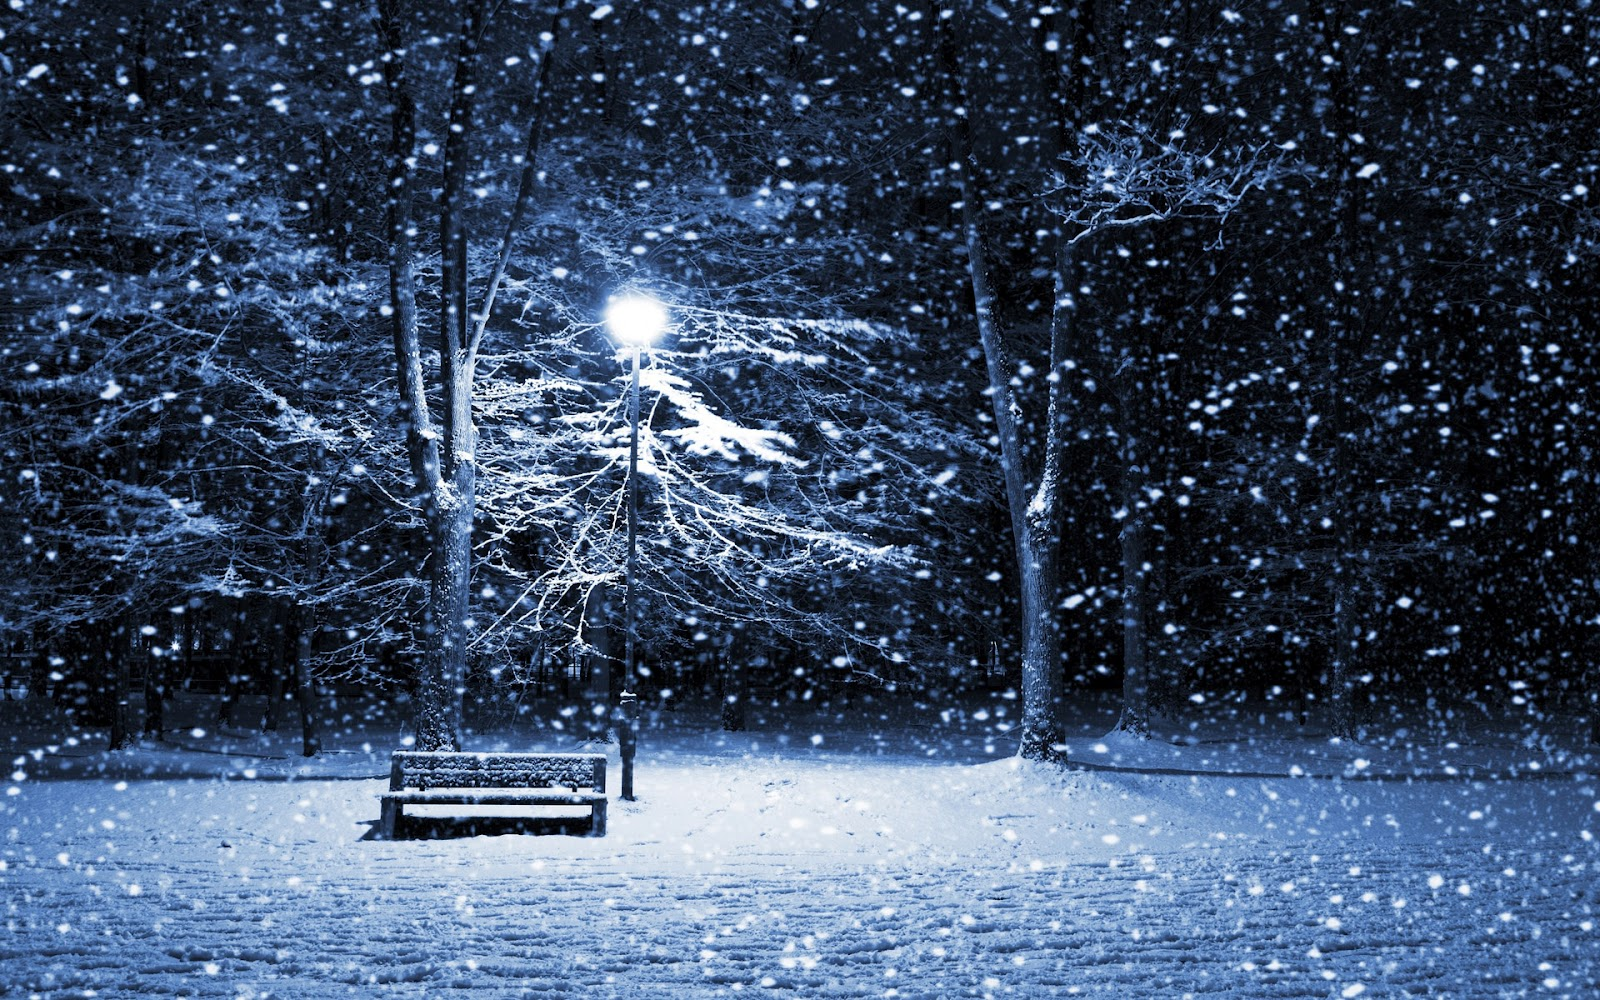 Winter Wallpaper Backgrounds. Widescreen Beautiful Winter Wallpapers Wallpapers for dekstop